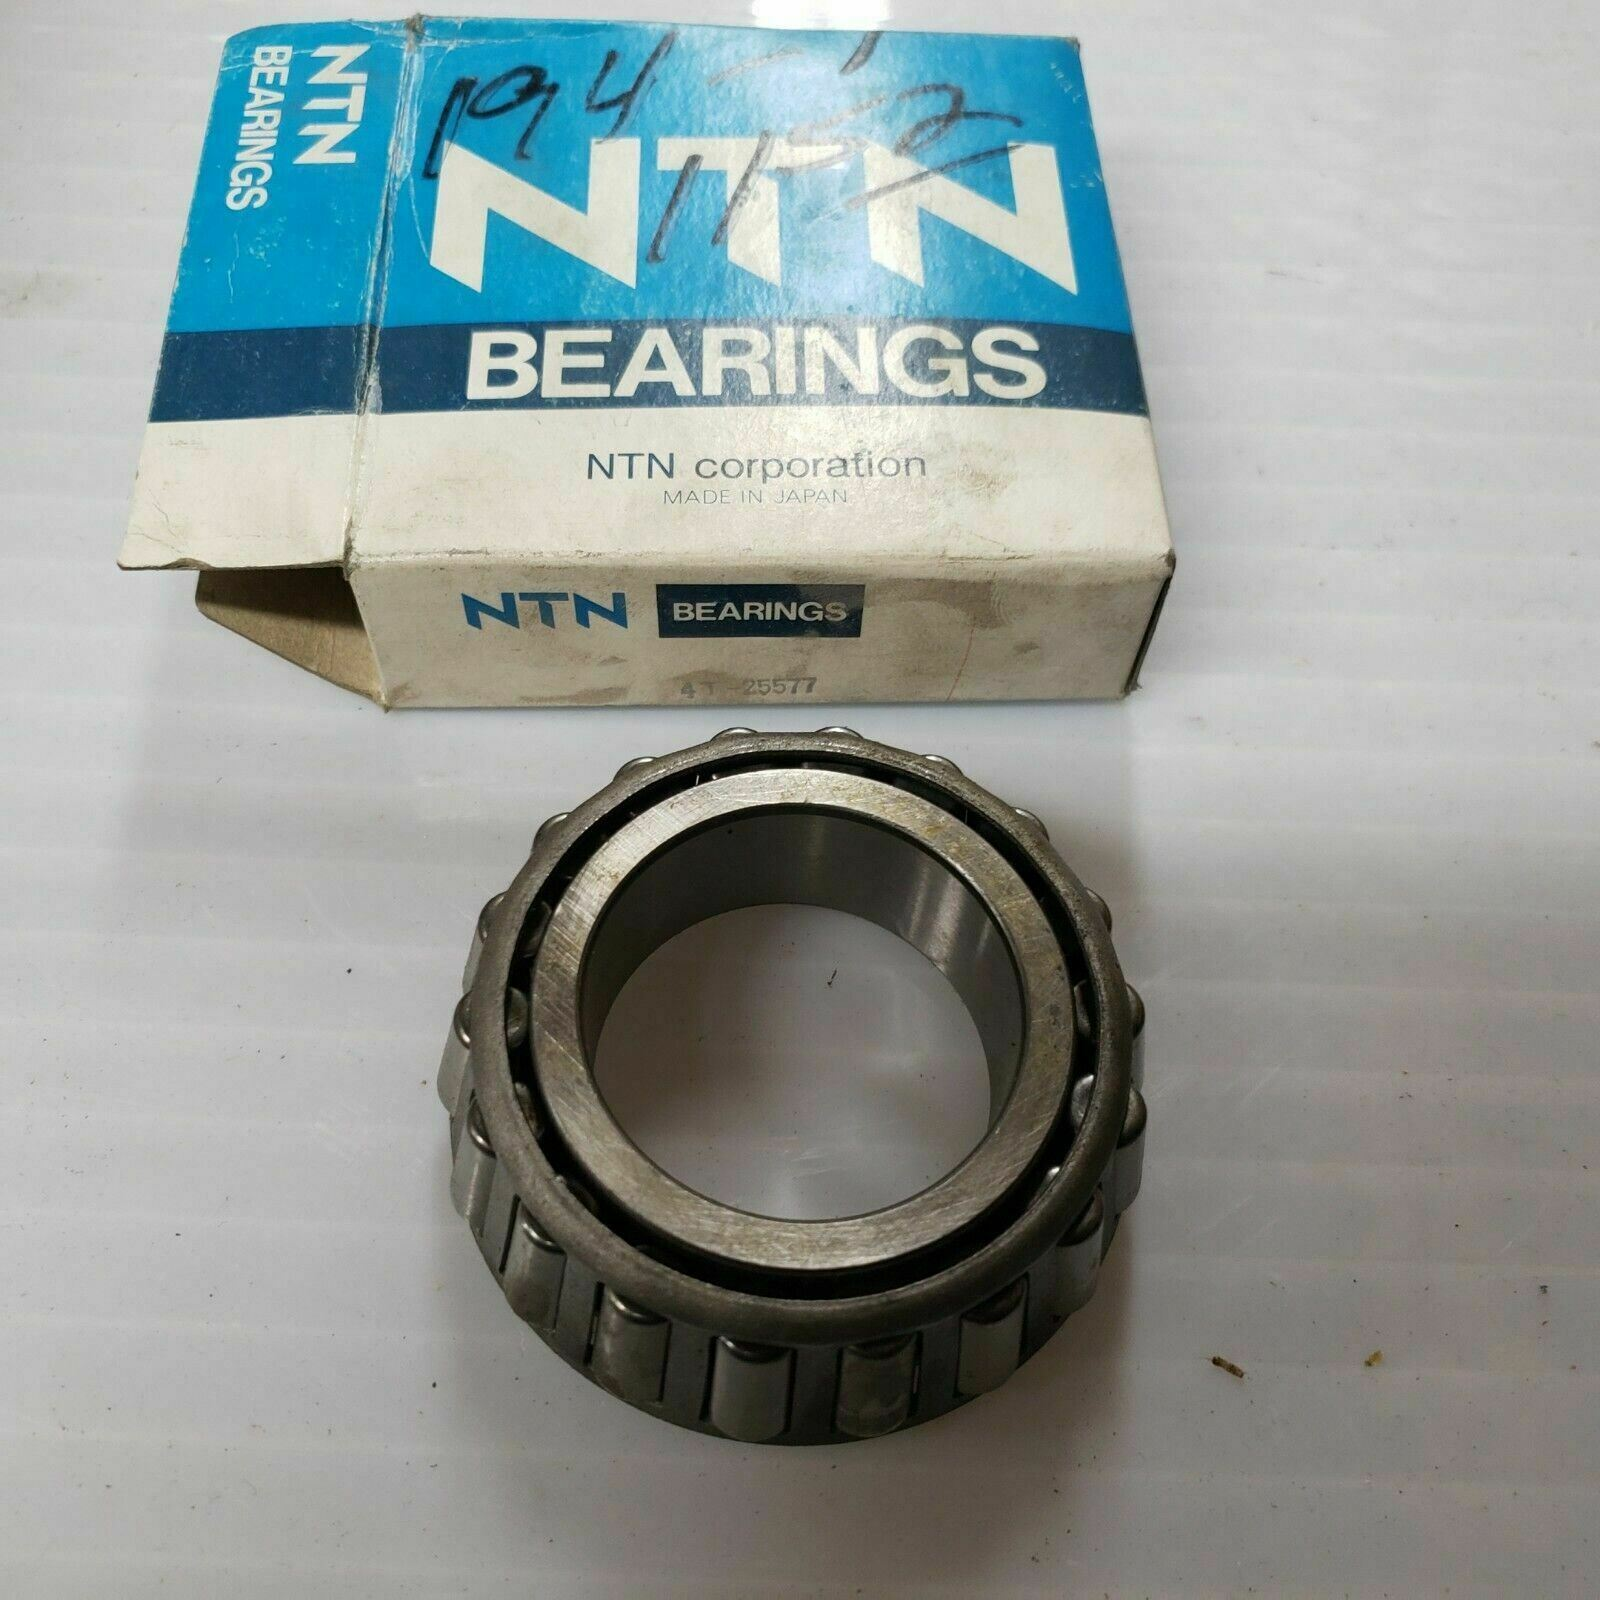 Bower roller bearing 3981 Cone